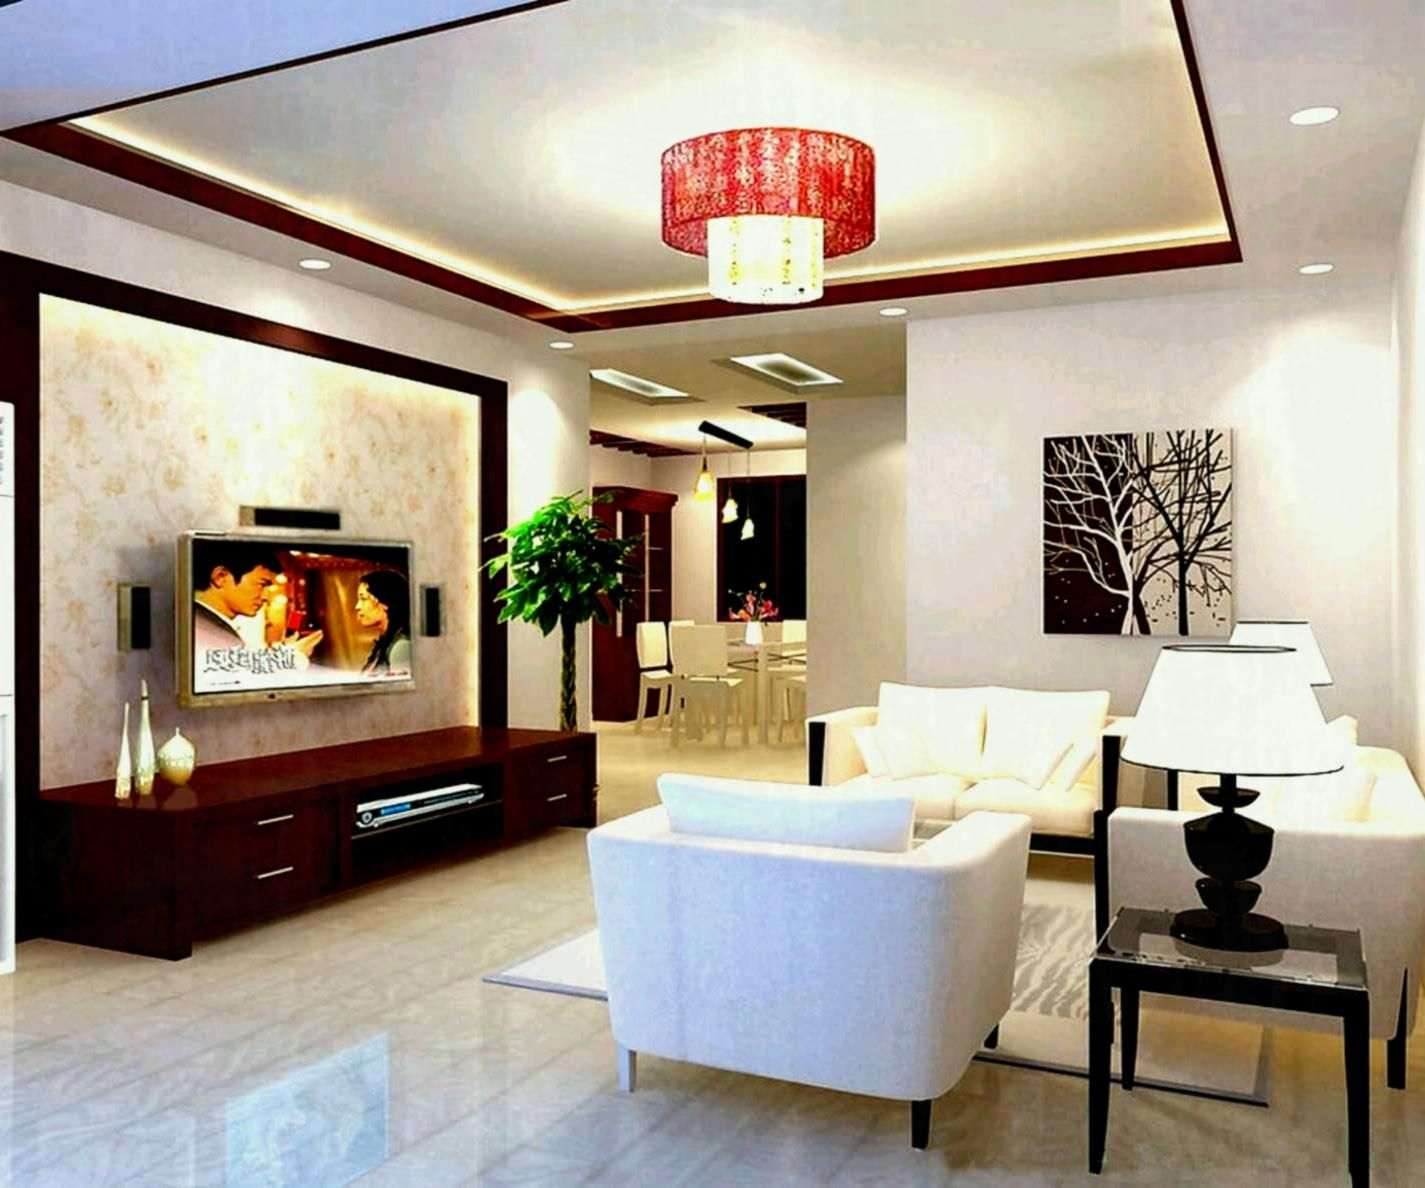 Pretty Home Interior Design For Middle Class Family With Pink Chandelier Modern Living Room Interior Hall Interior Design Small House Interior Design